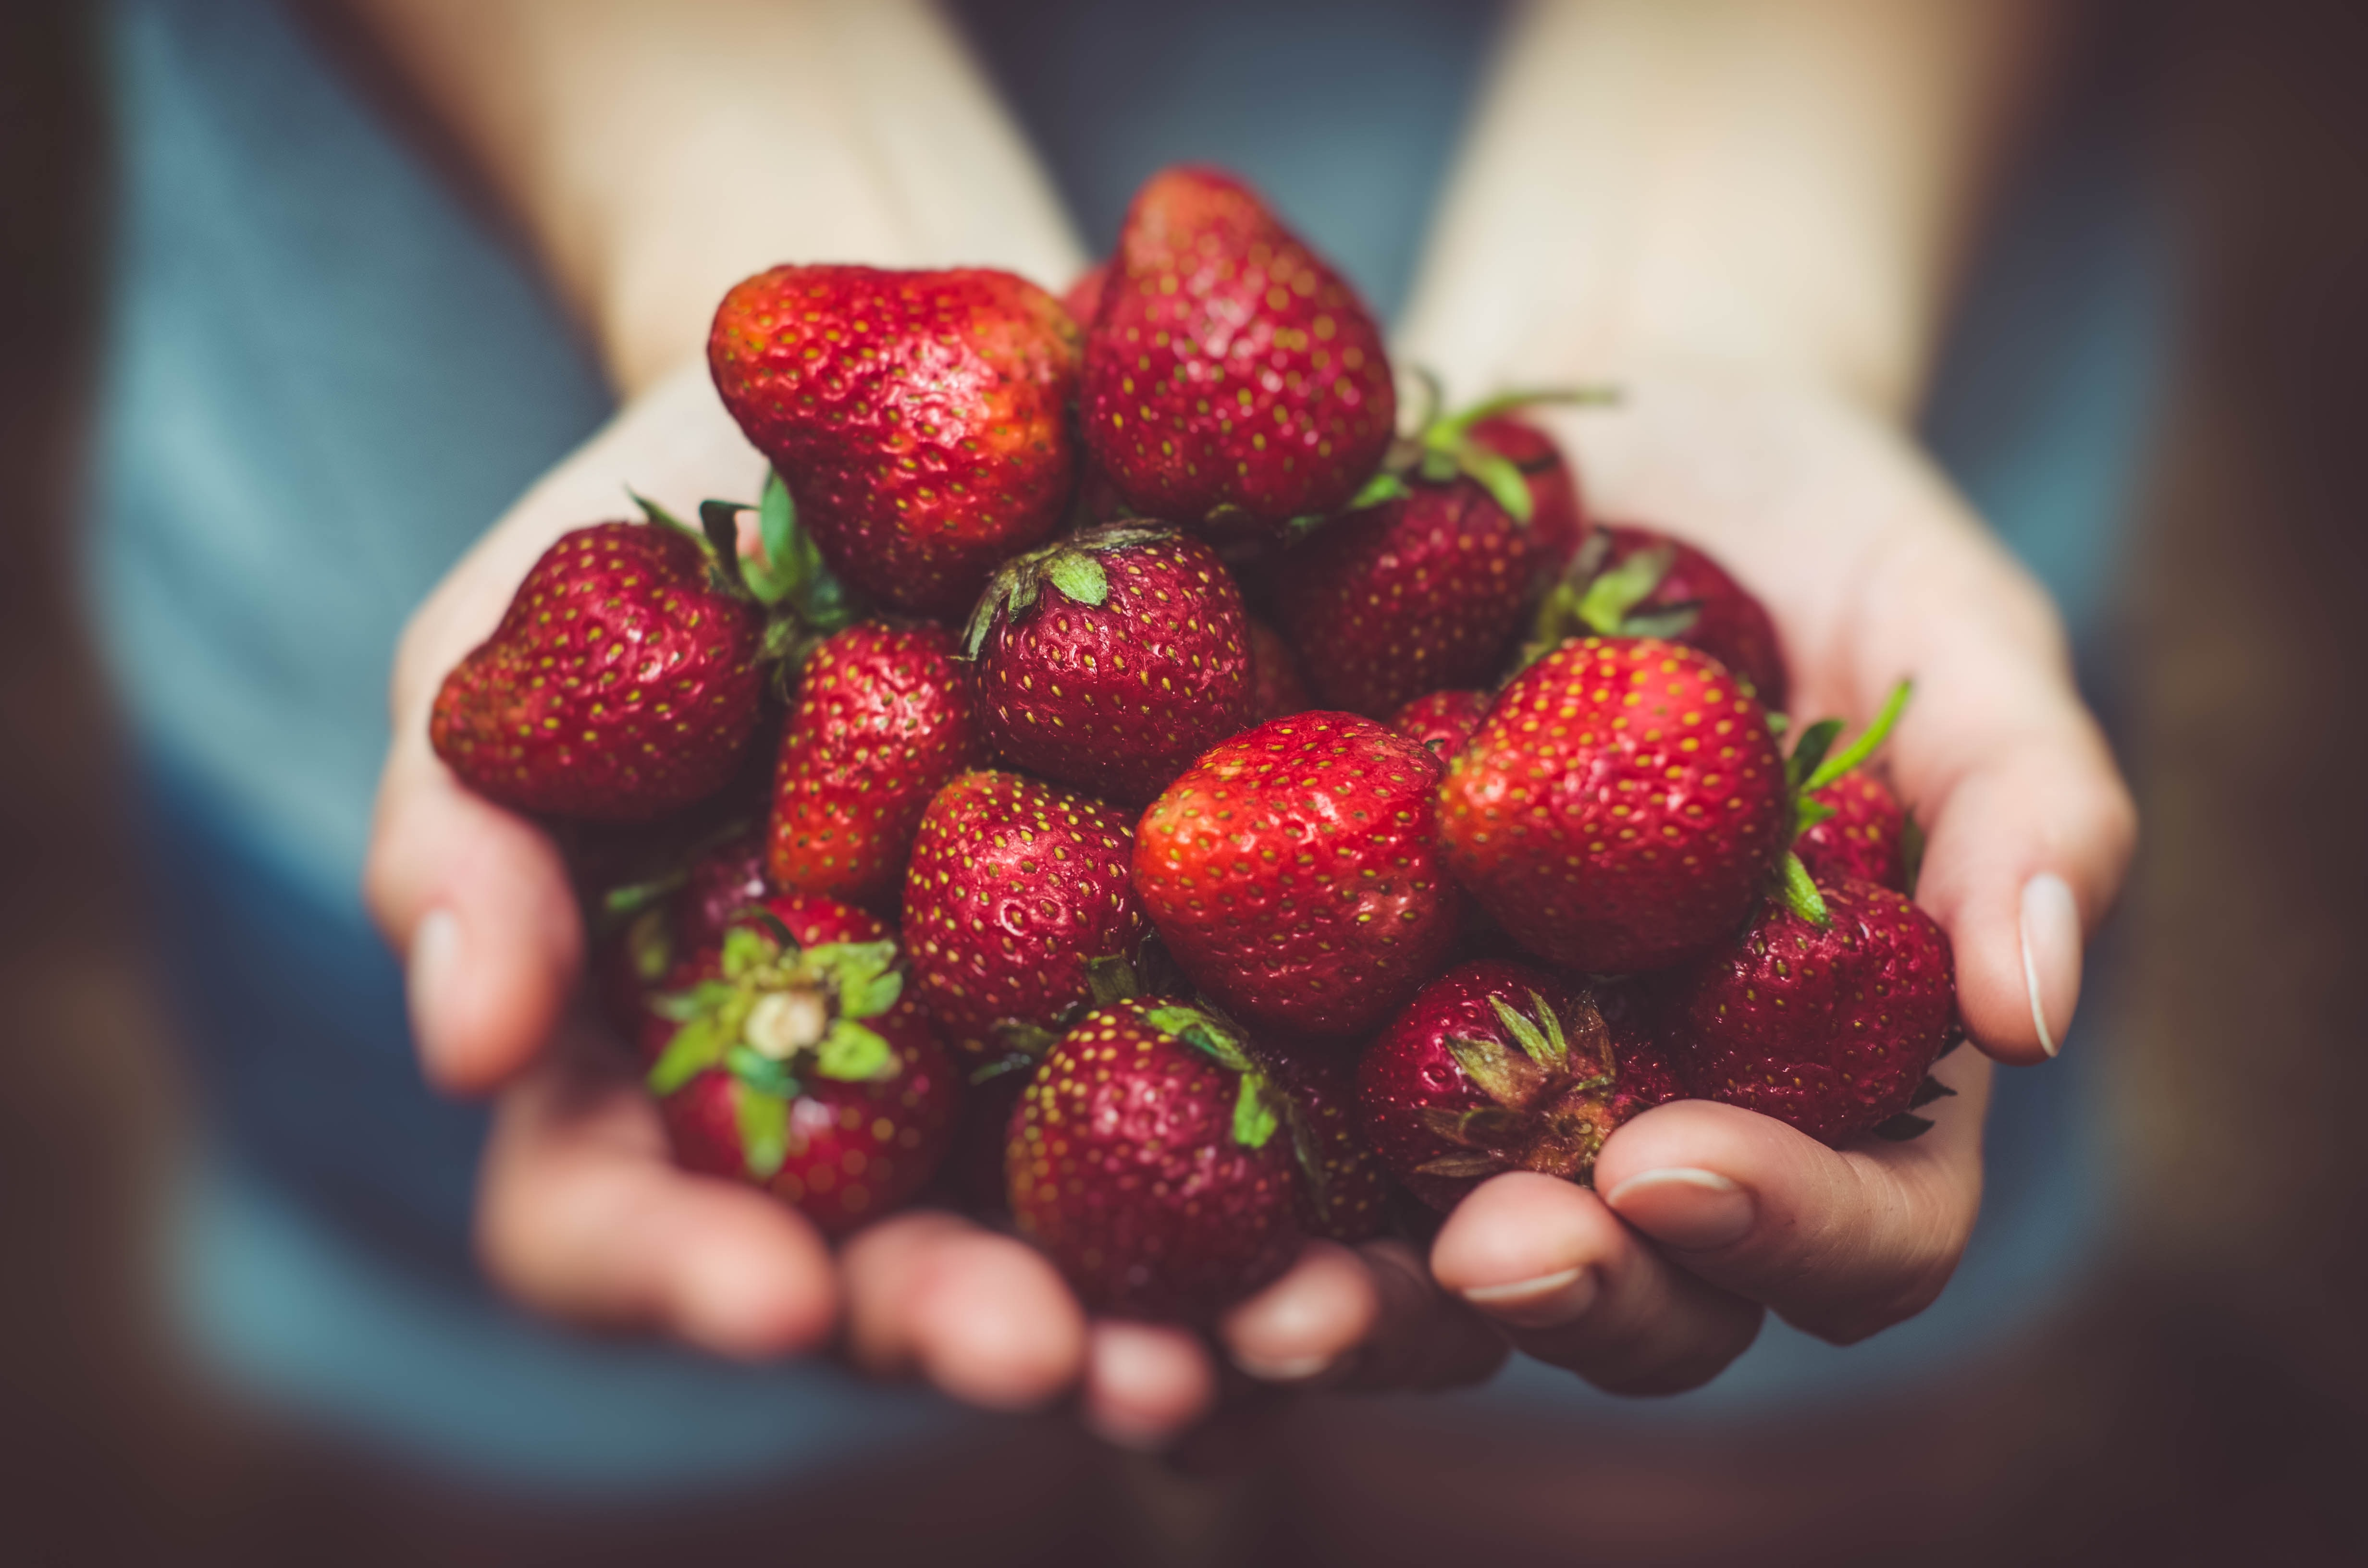 A person's cupped hands holding ripe dark red strawberries